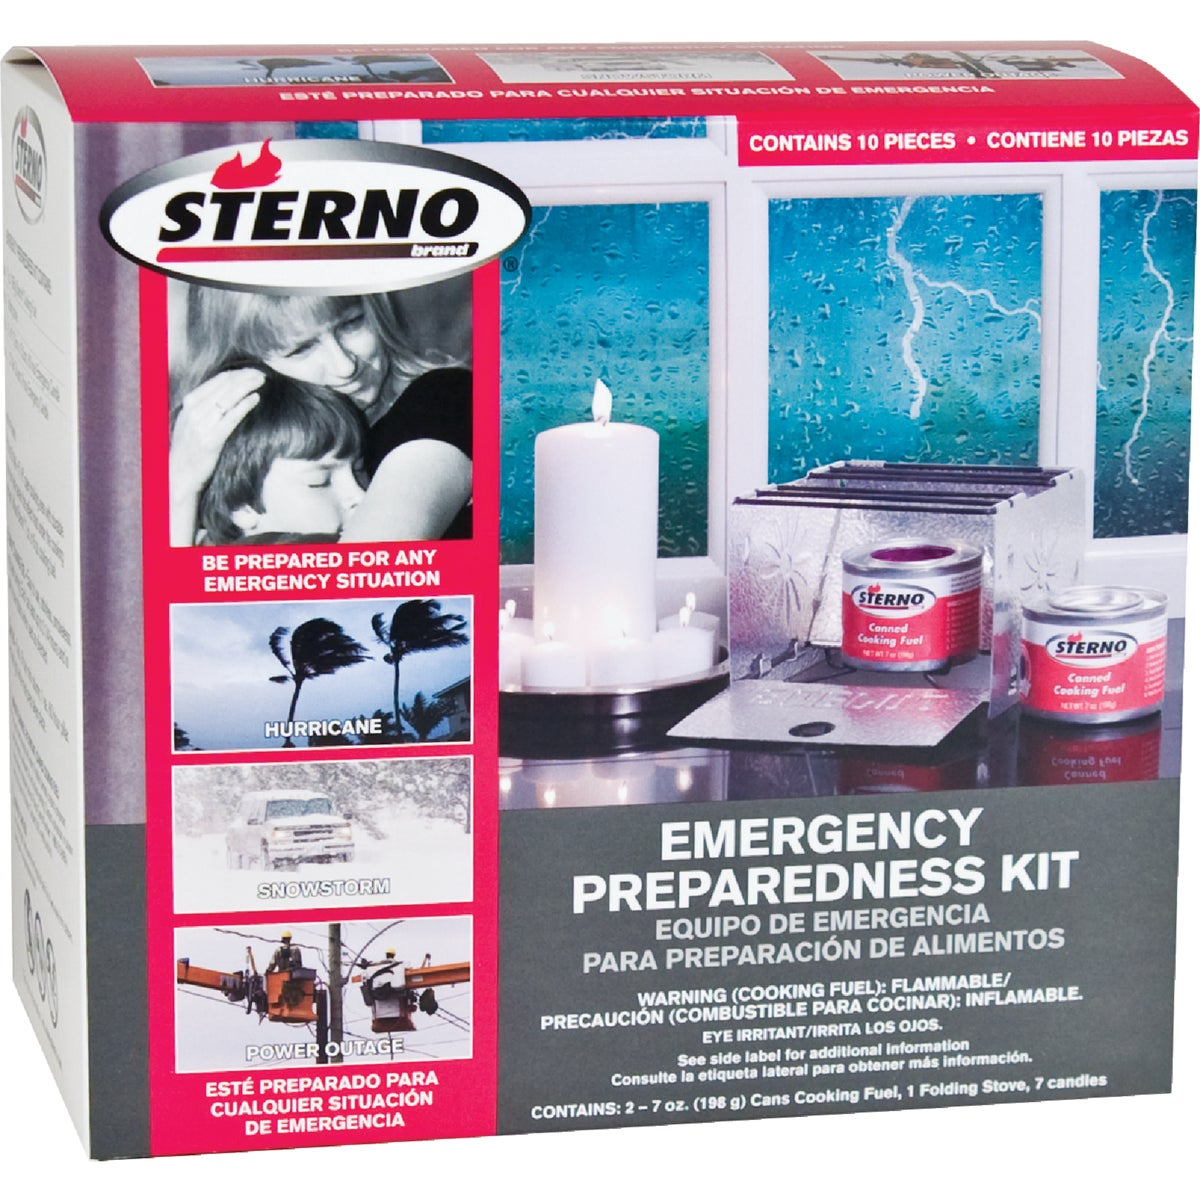 EMERGENCY PREP KIT - 60001 by Sterno Group Llc